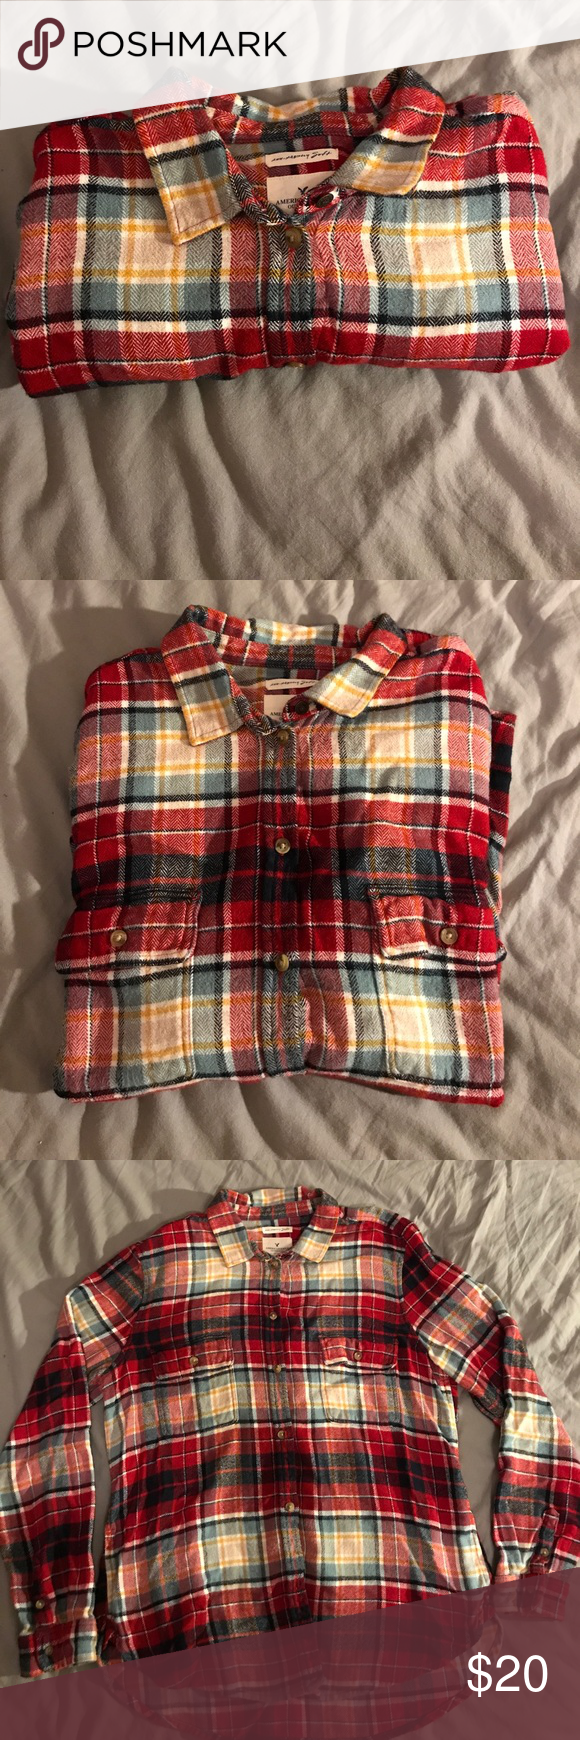 Navy blue flannel shirt womens  American Eagle flannel  Flannels Houndstooth and Eagle